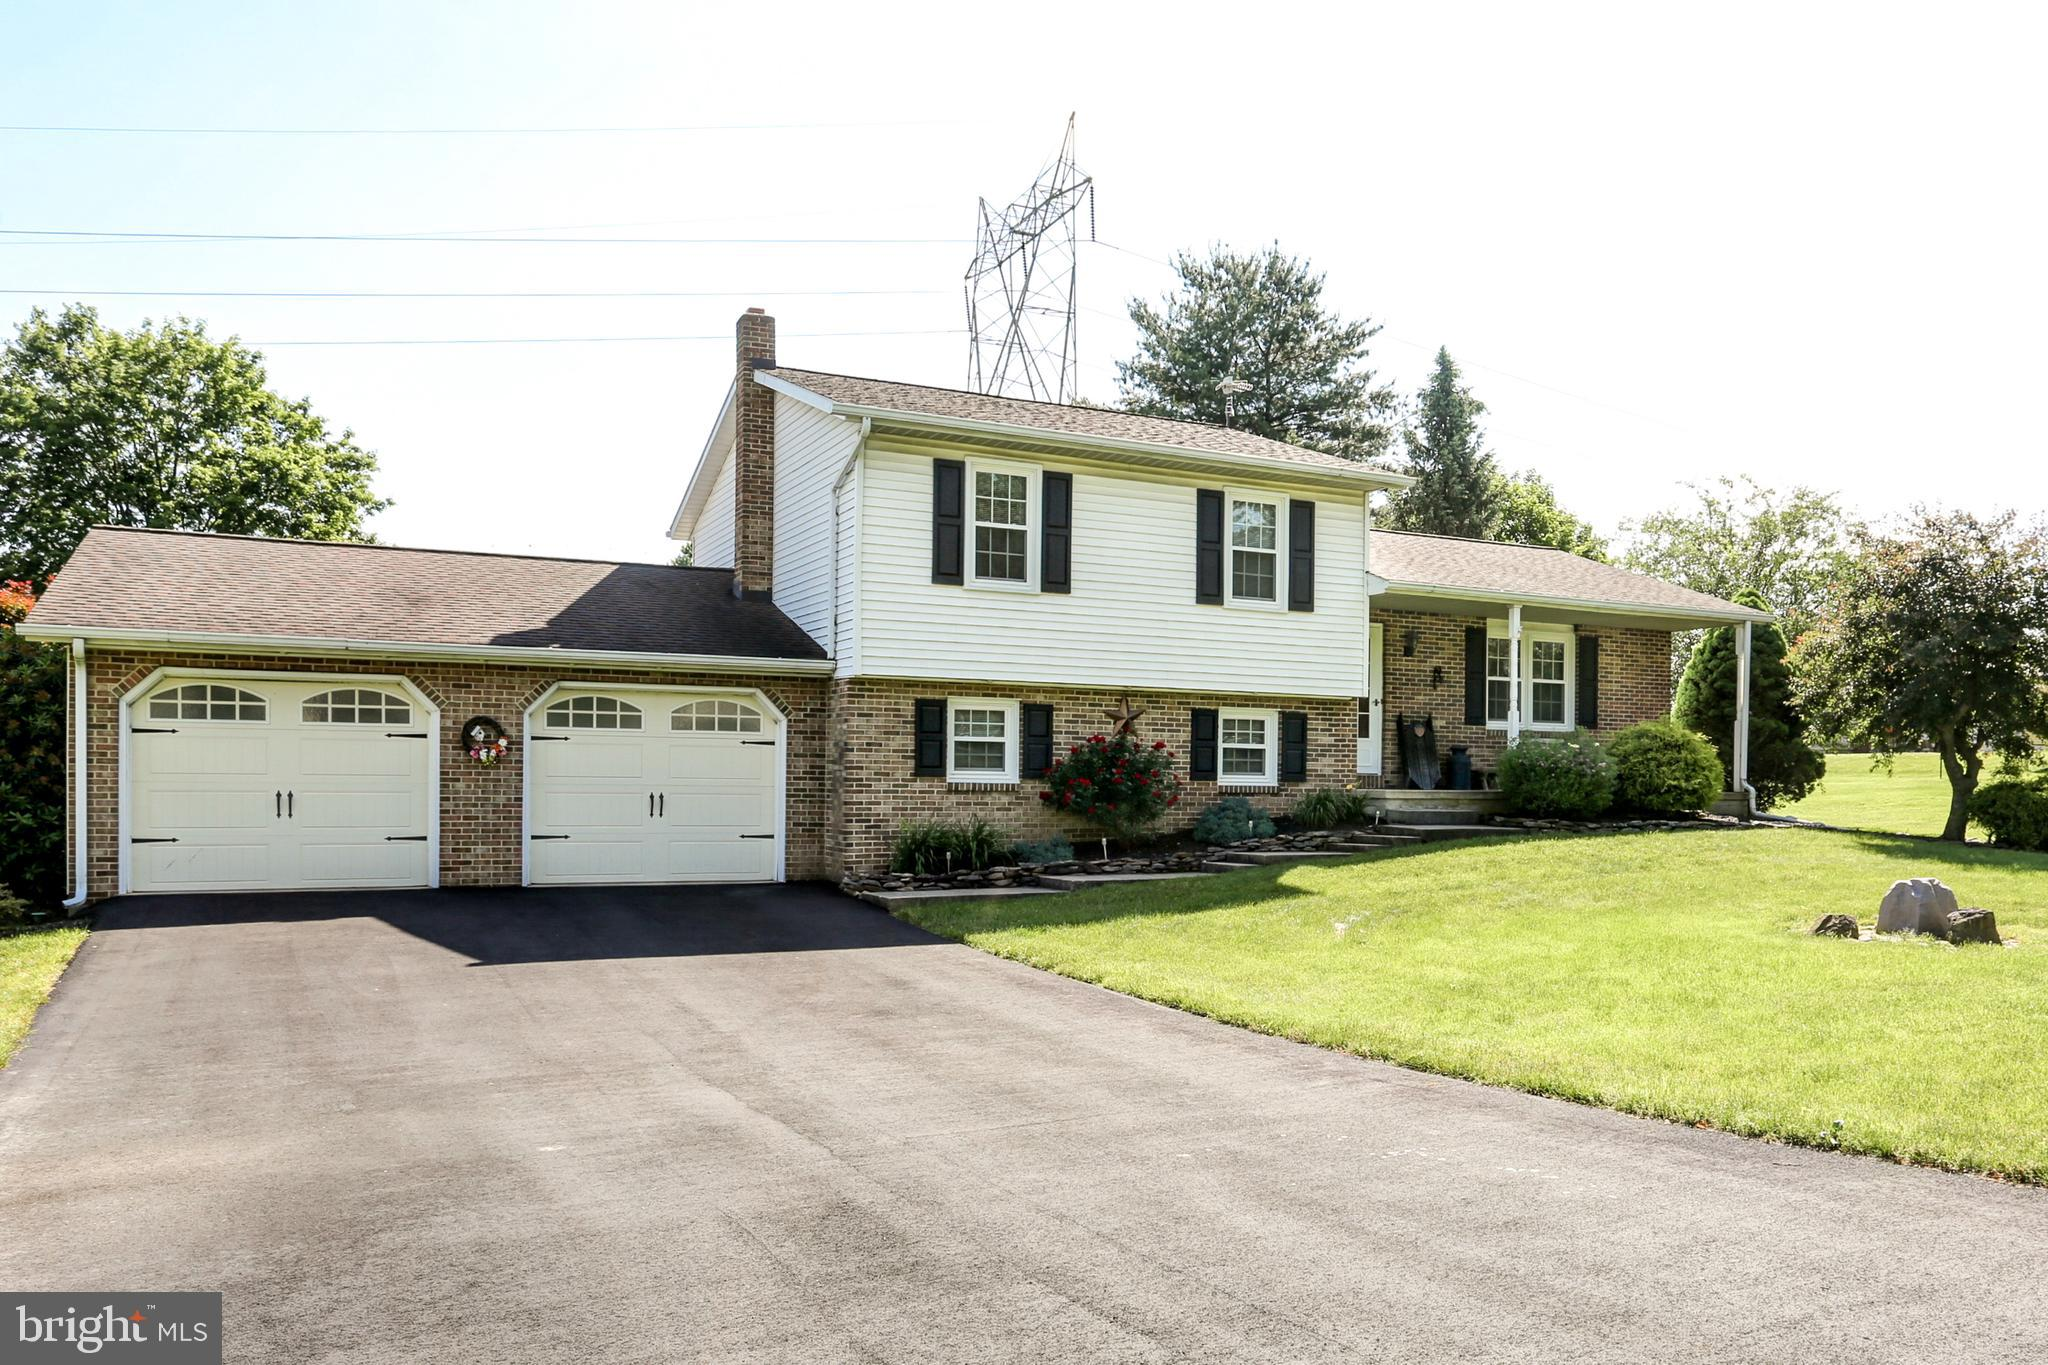 107 MEADOW VIEW LANE, BAINBRIDGE, PA 17502